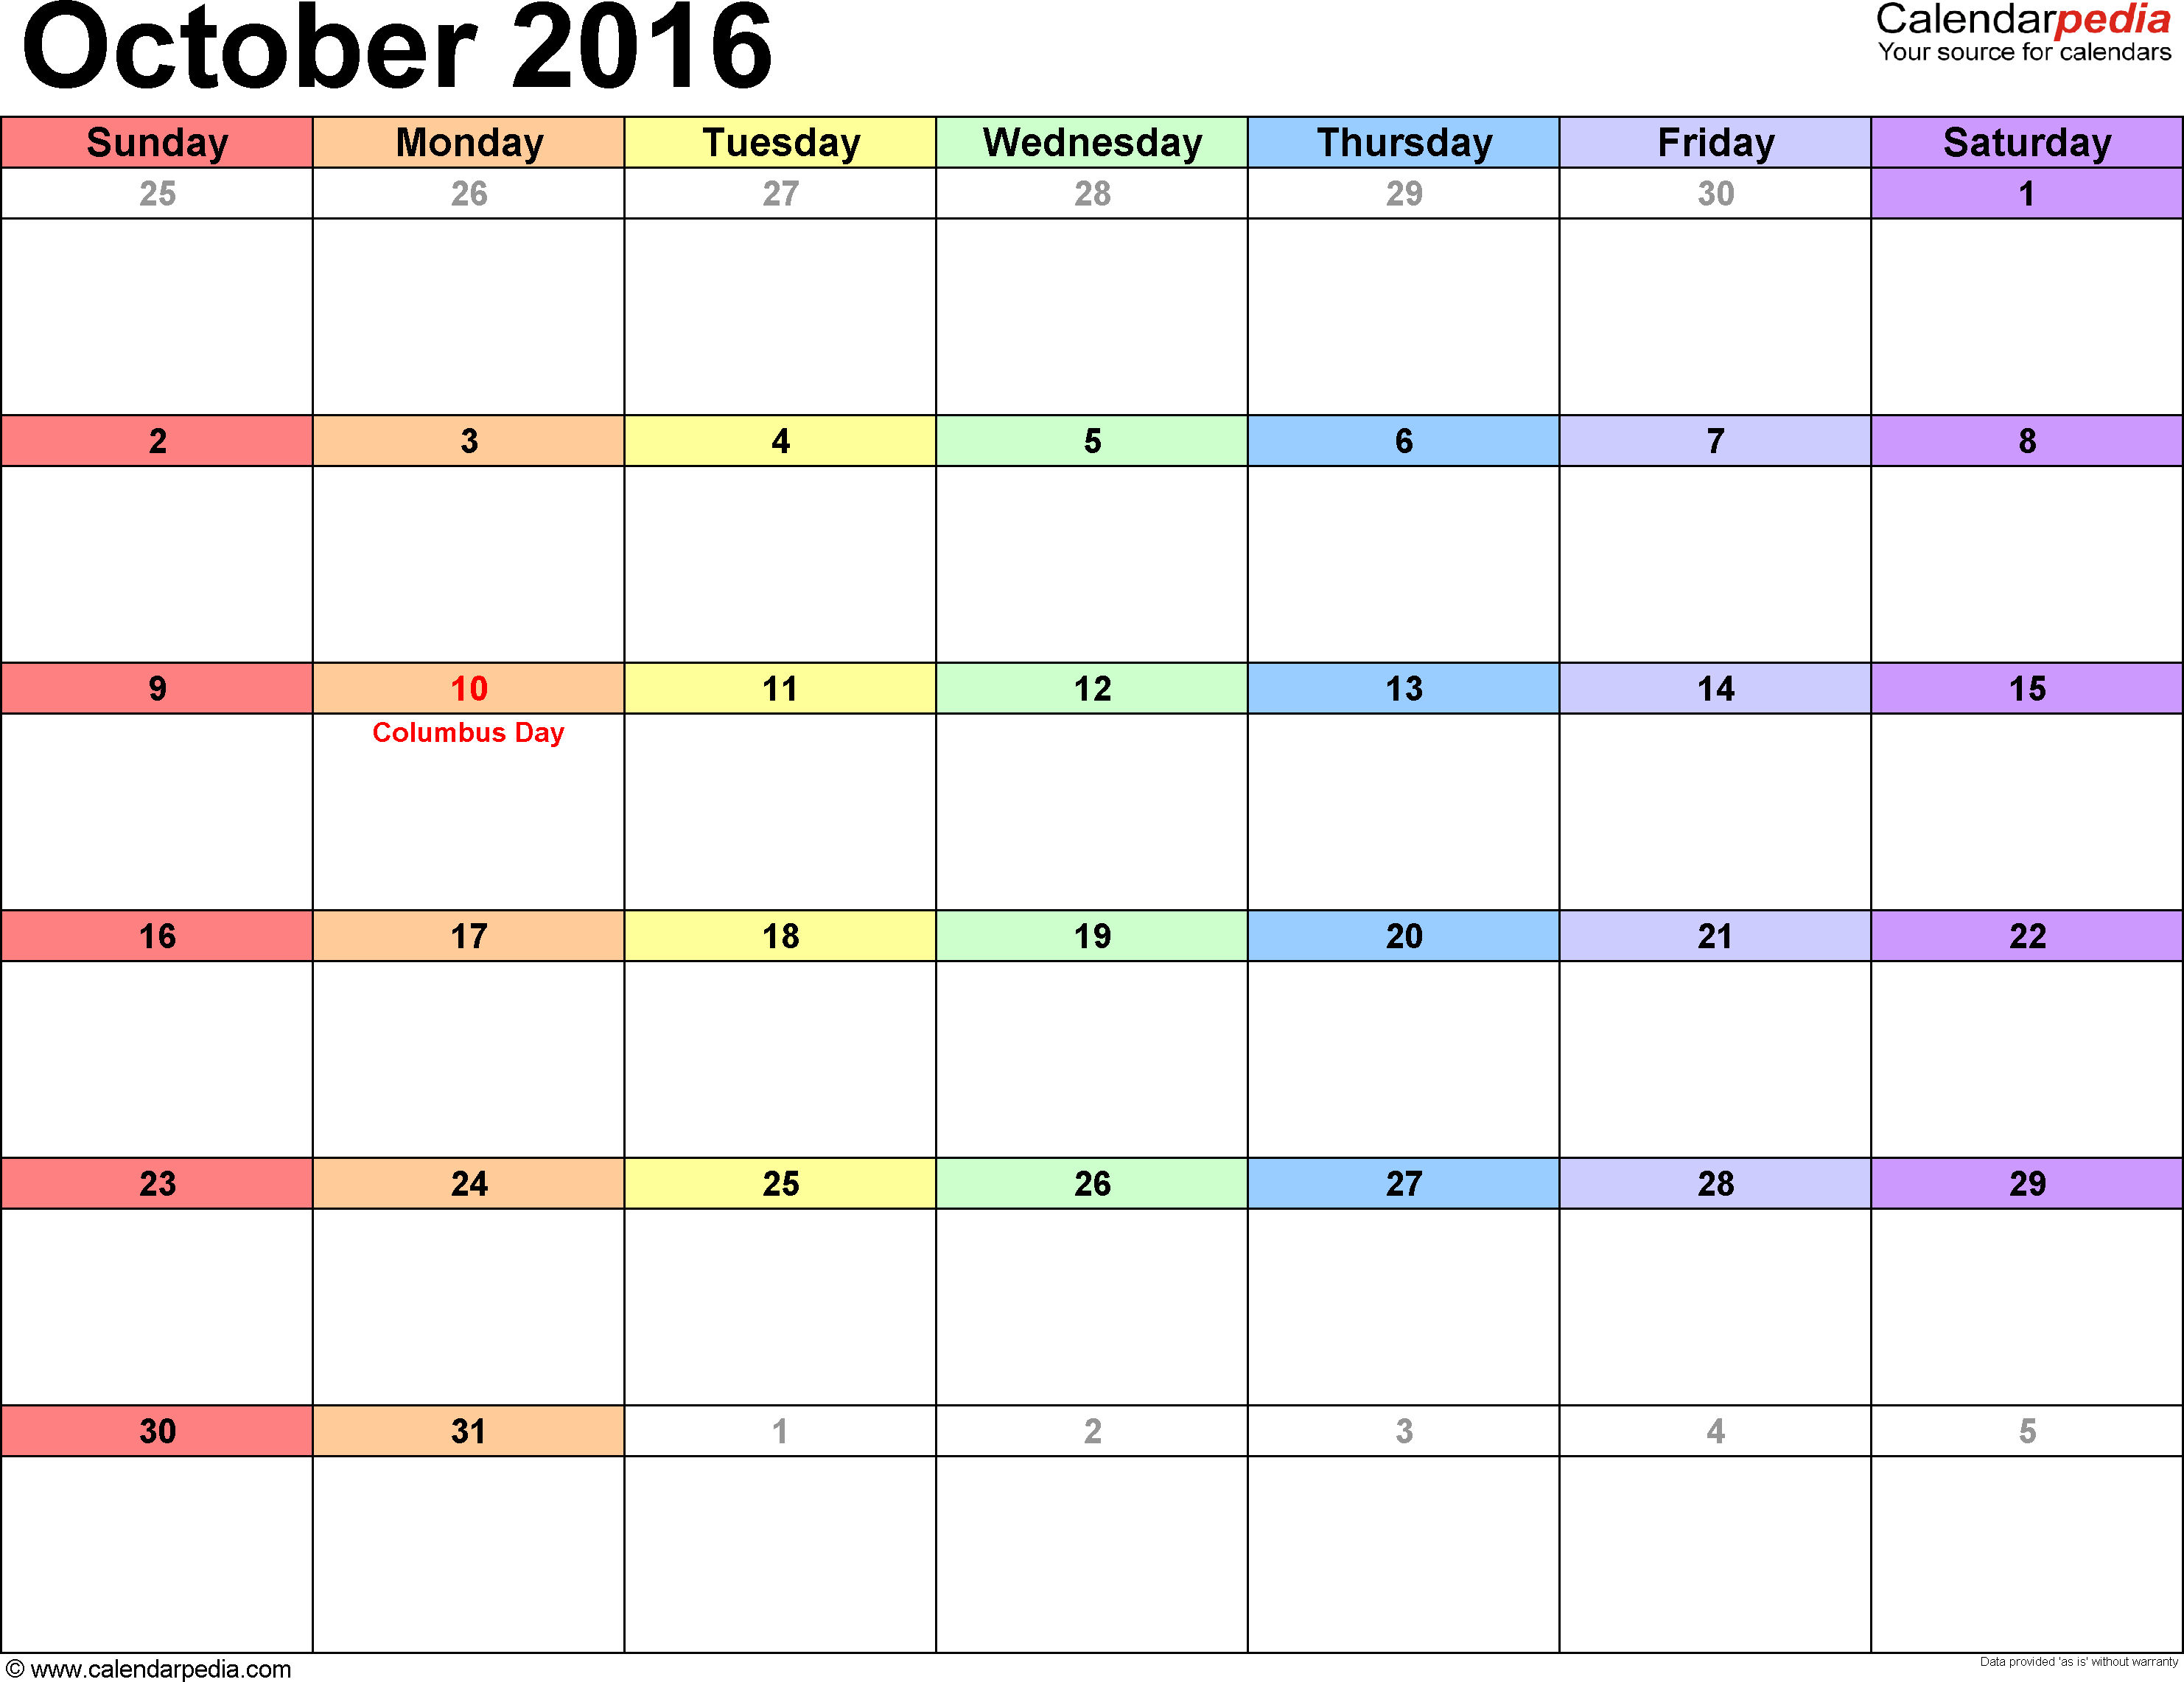 October 2017 Calendar - My Calendar Land